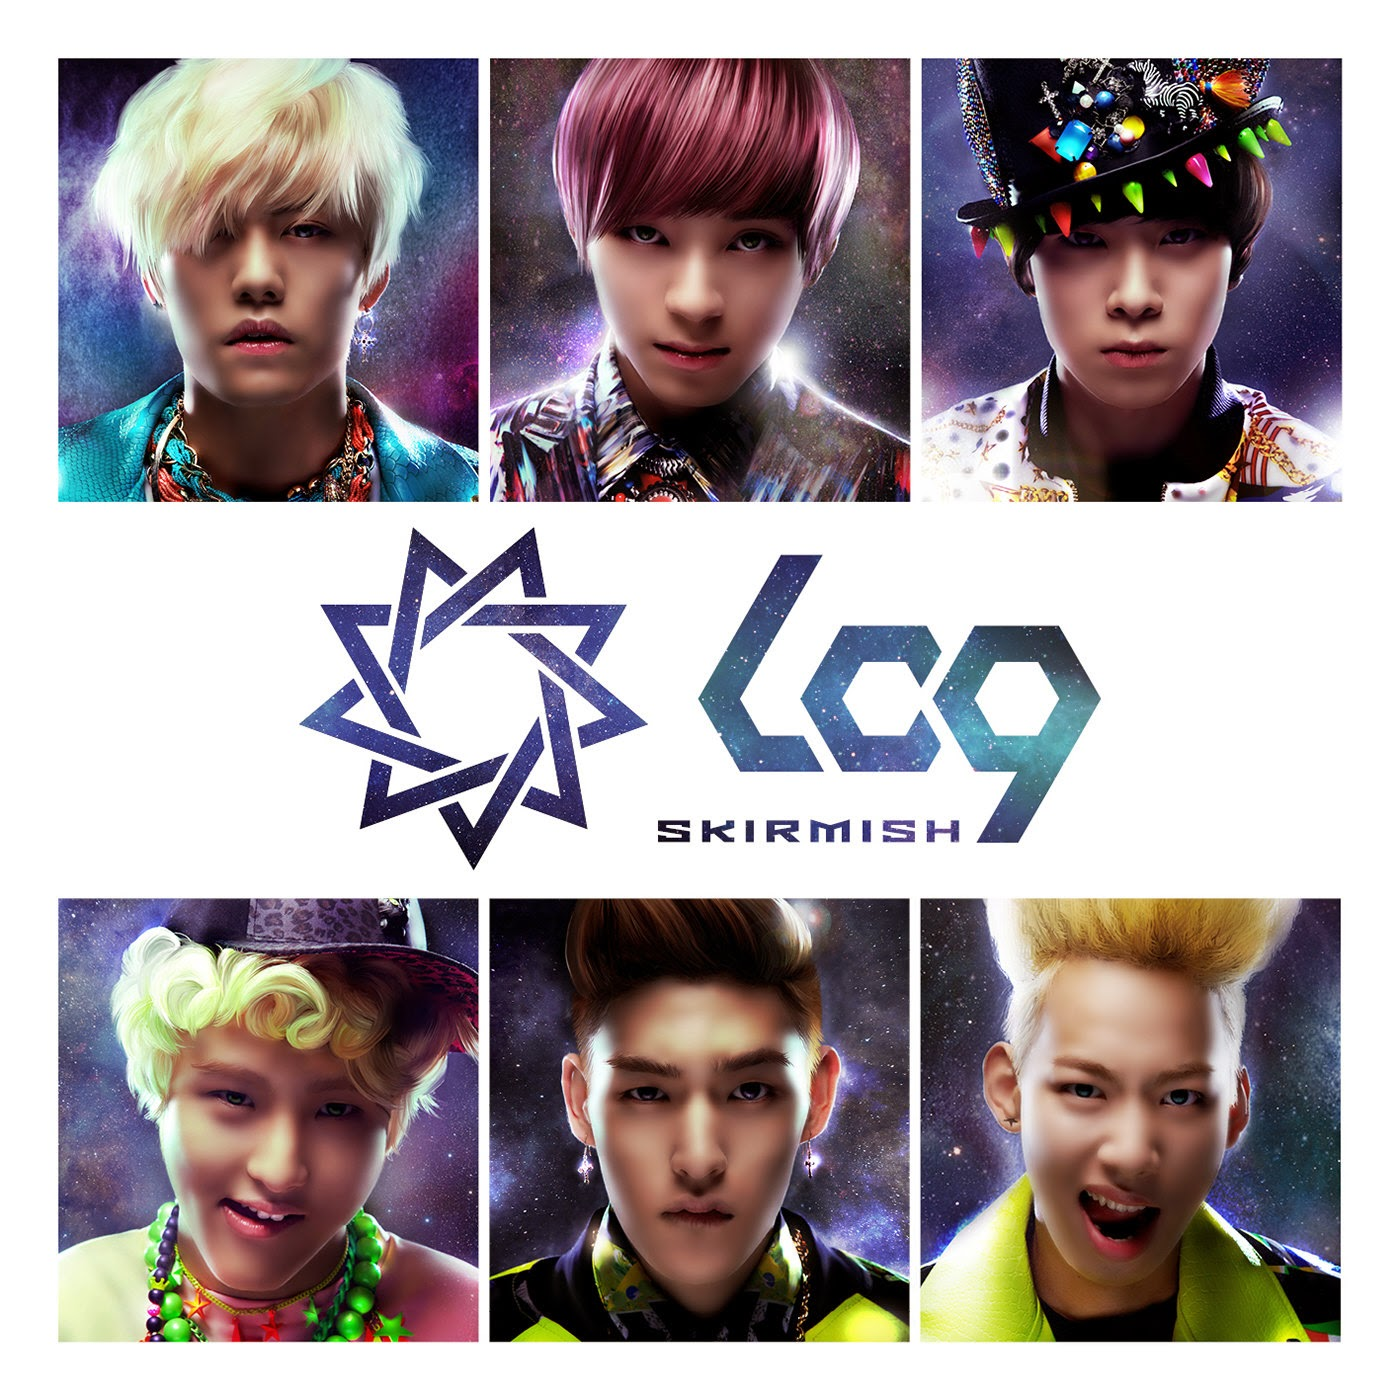 lc9 skirmish cover